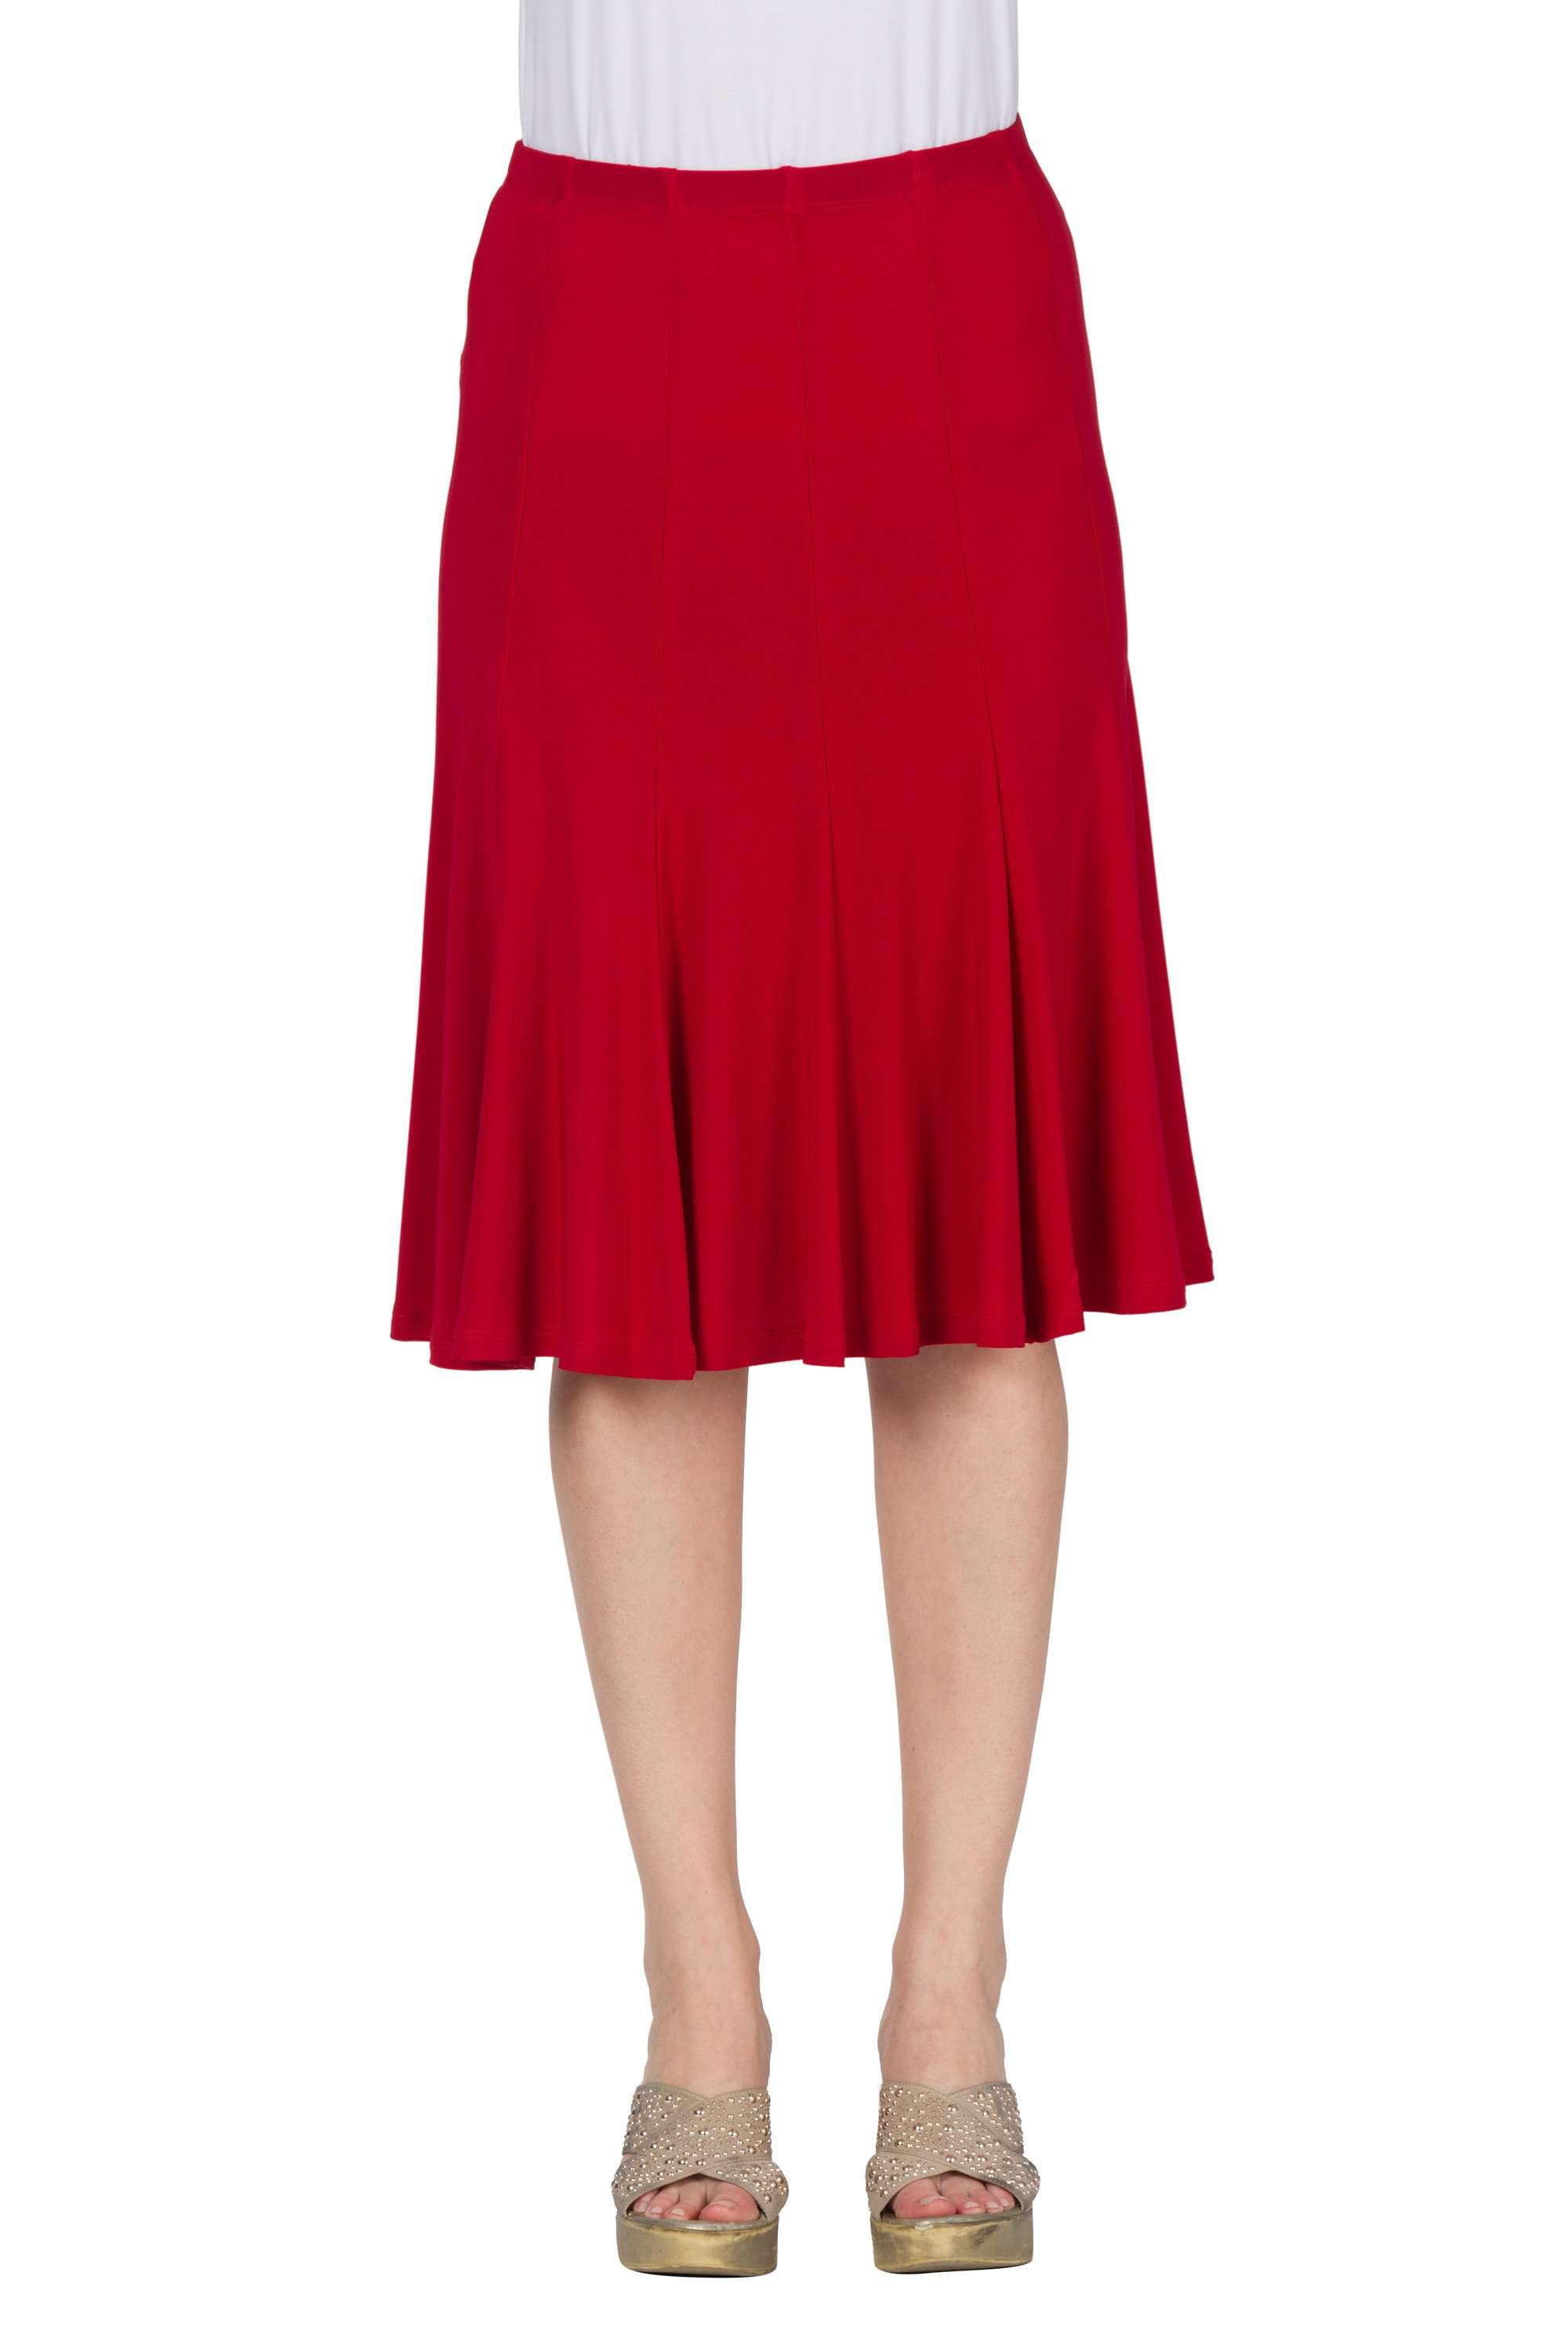 Skirt Red Gored Best Fit - Yvonne Marie